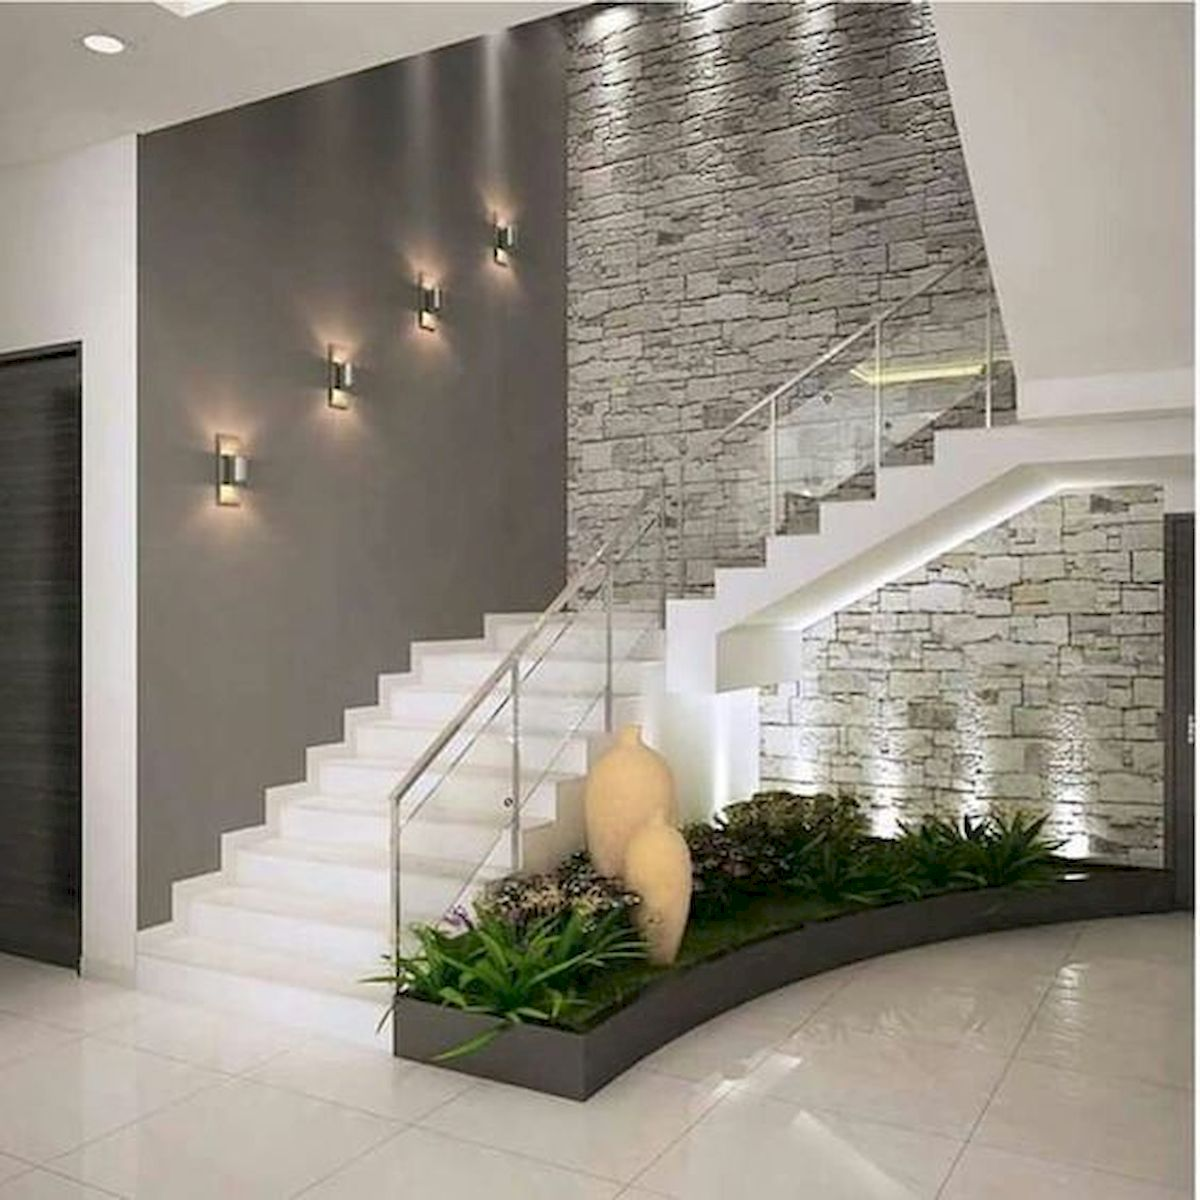 40 Awesome Indoor Garden Design Ideas That Look Beautiful (5)